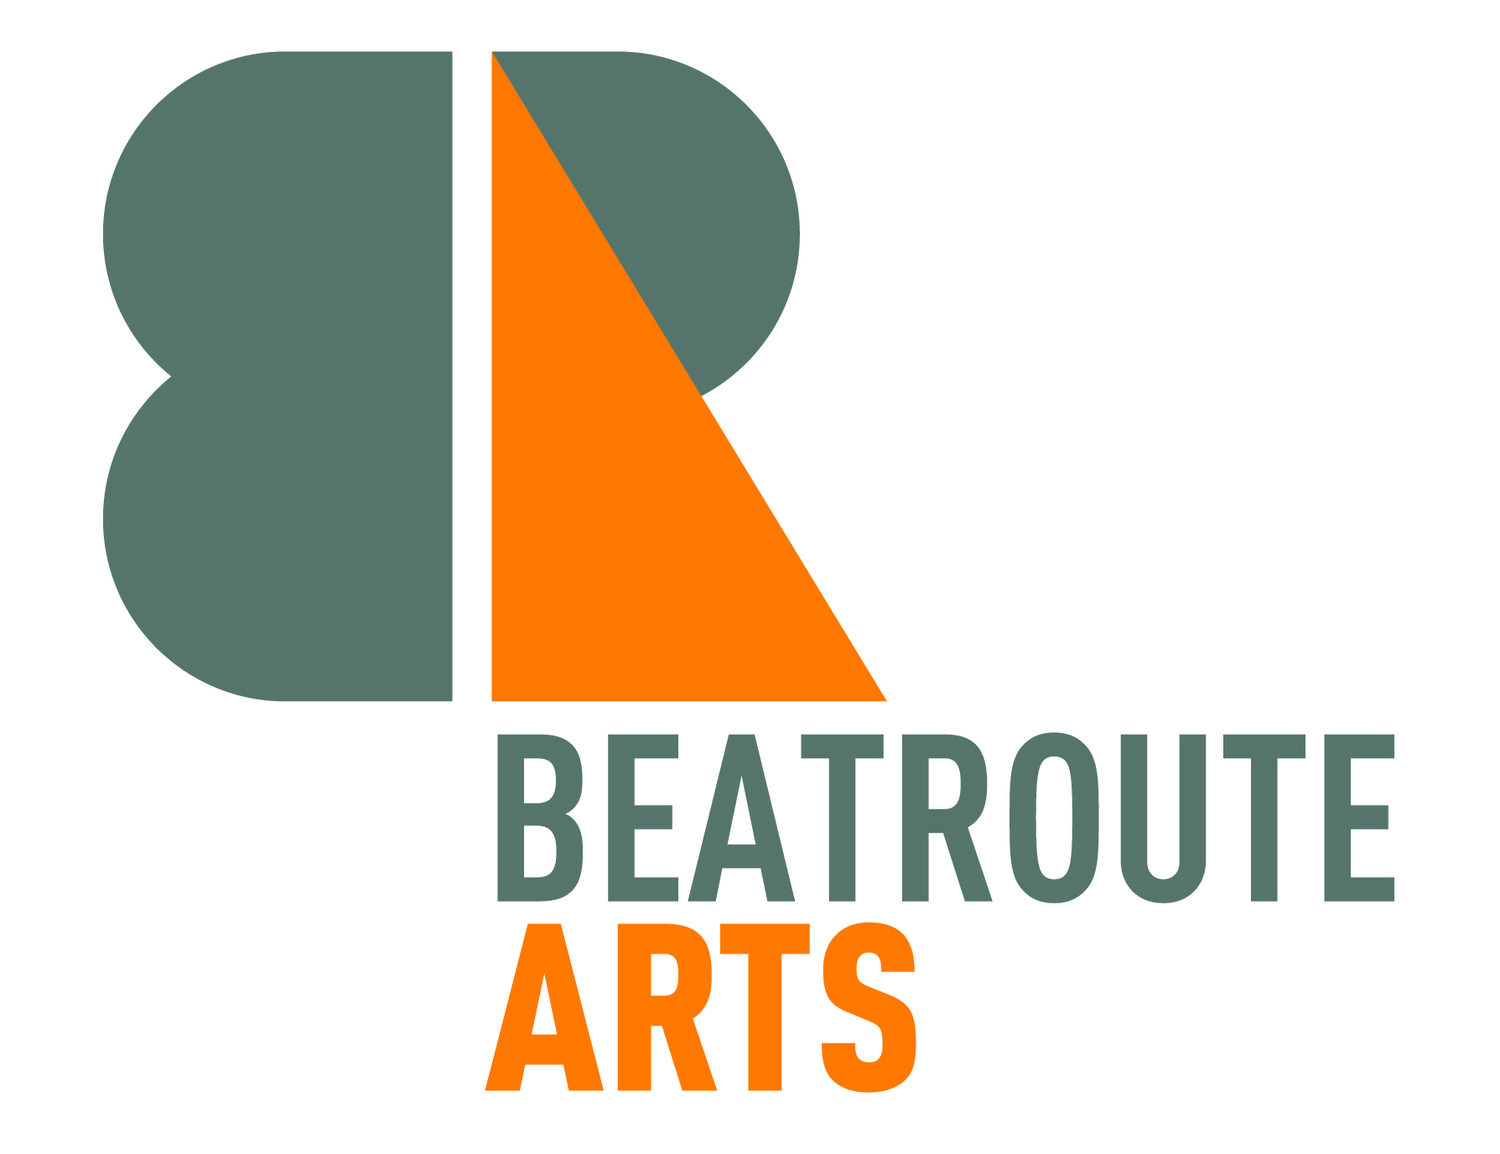 beatroute arts logo in grey and orange